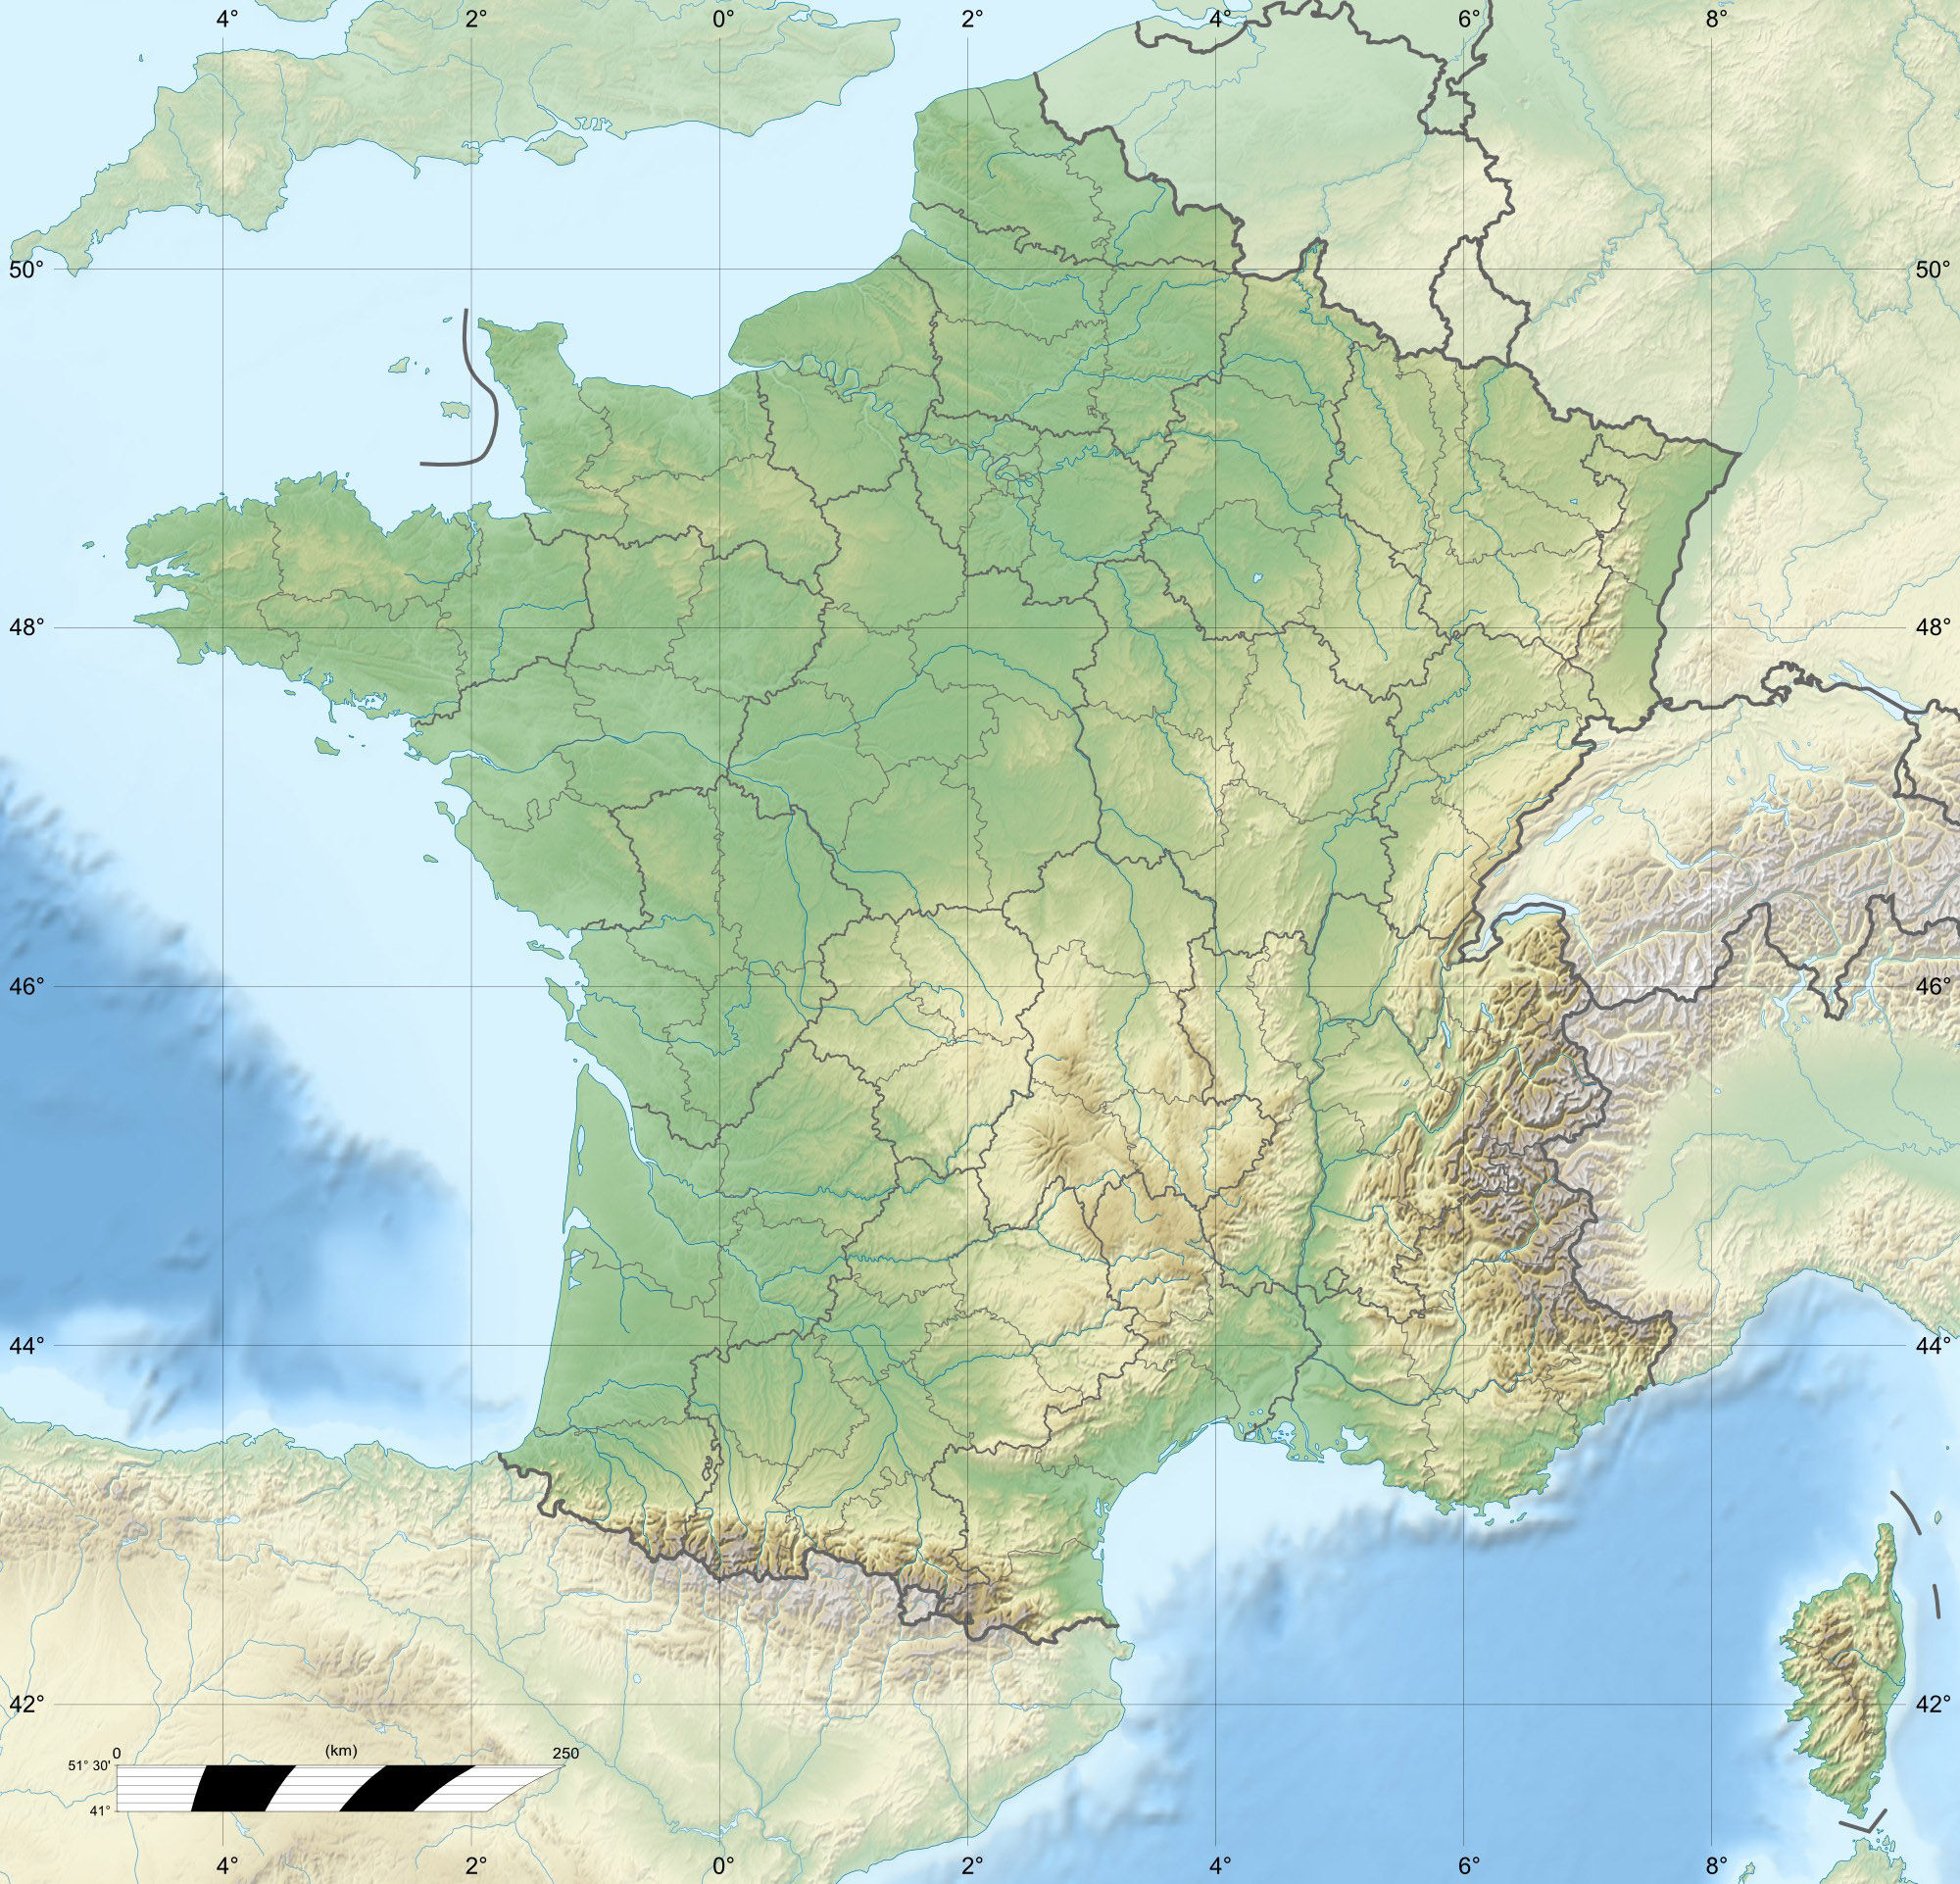 File:france Relief Location Carte Regions Et Departements intérieur Carte De France Des Départements